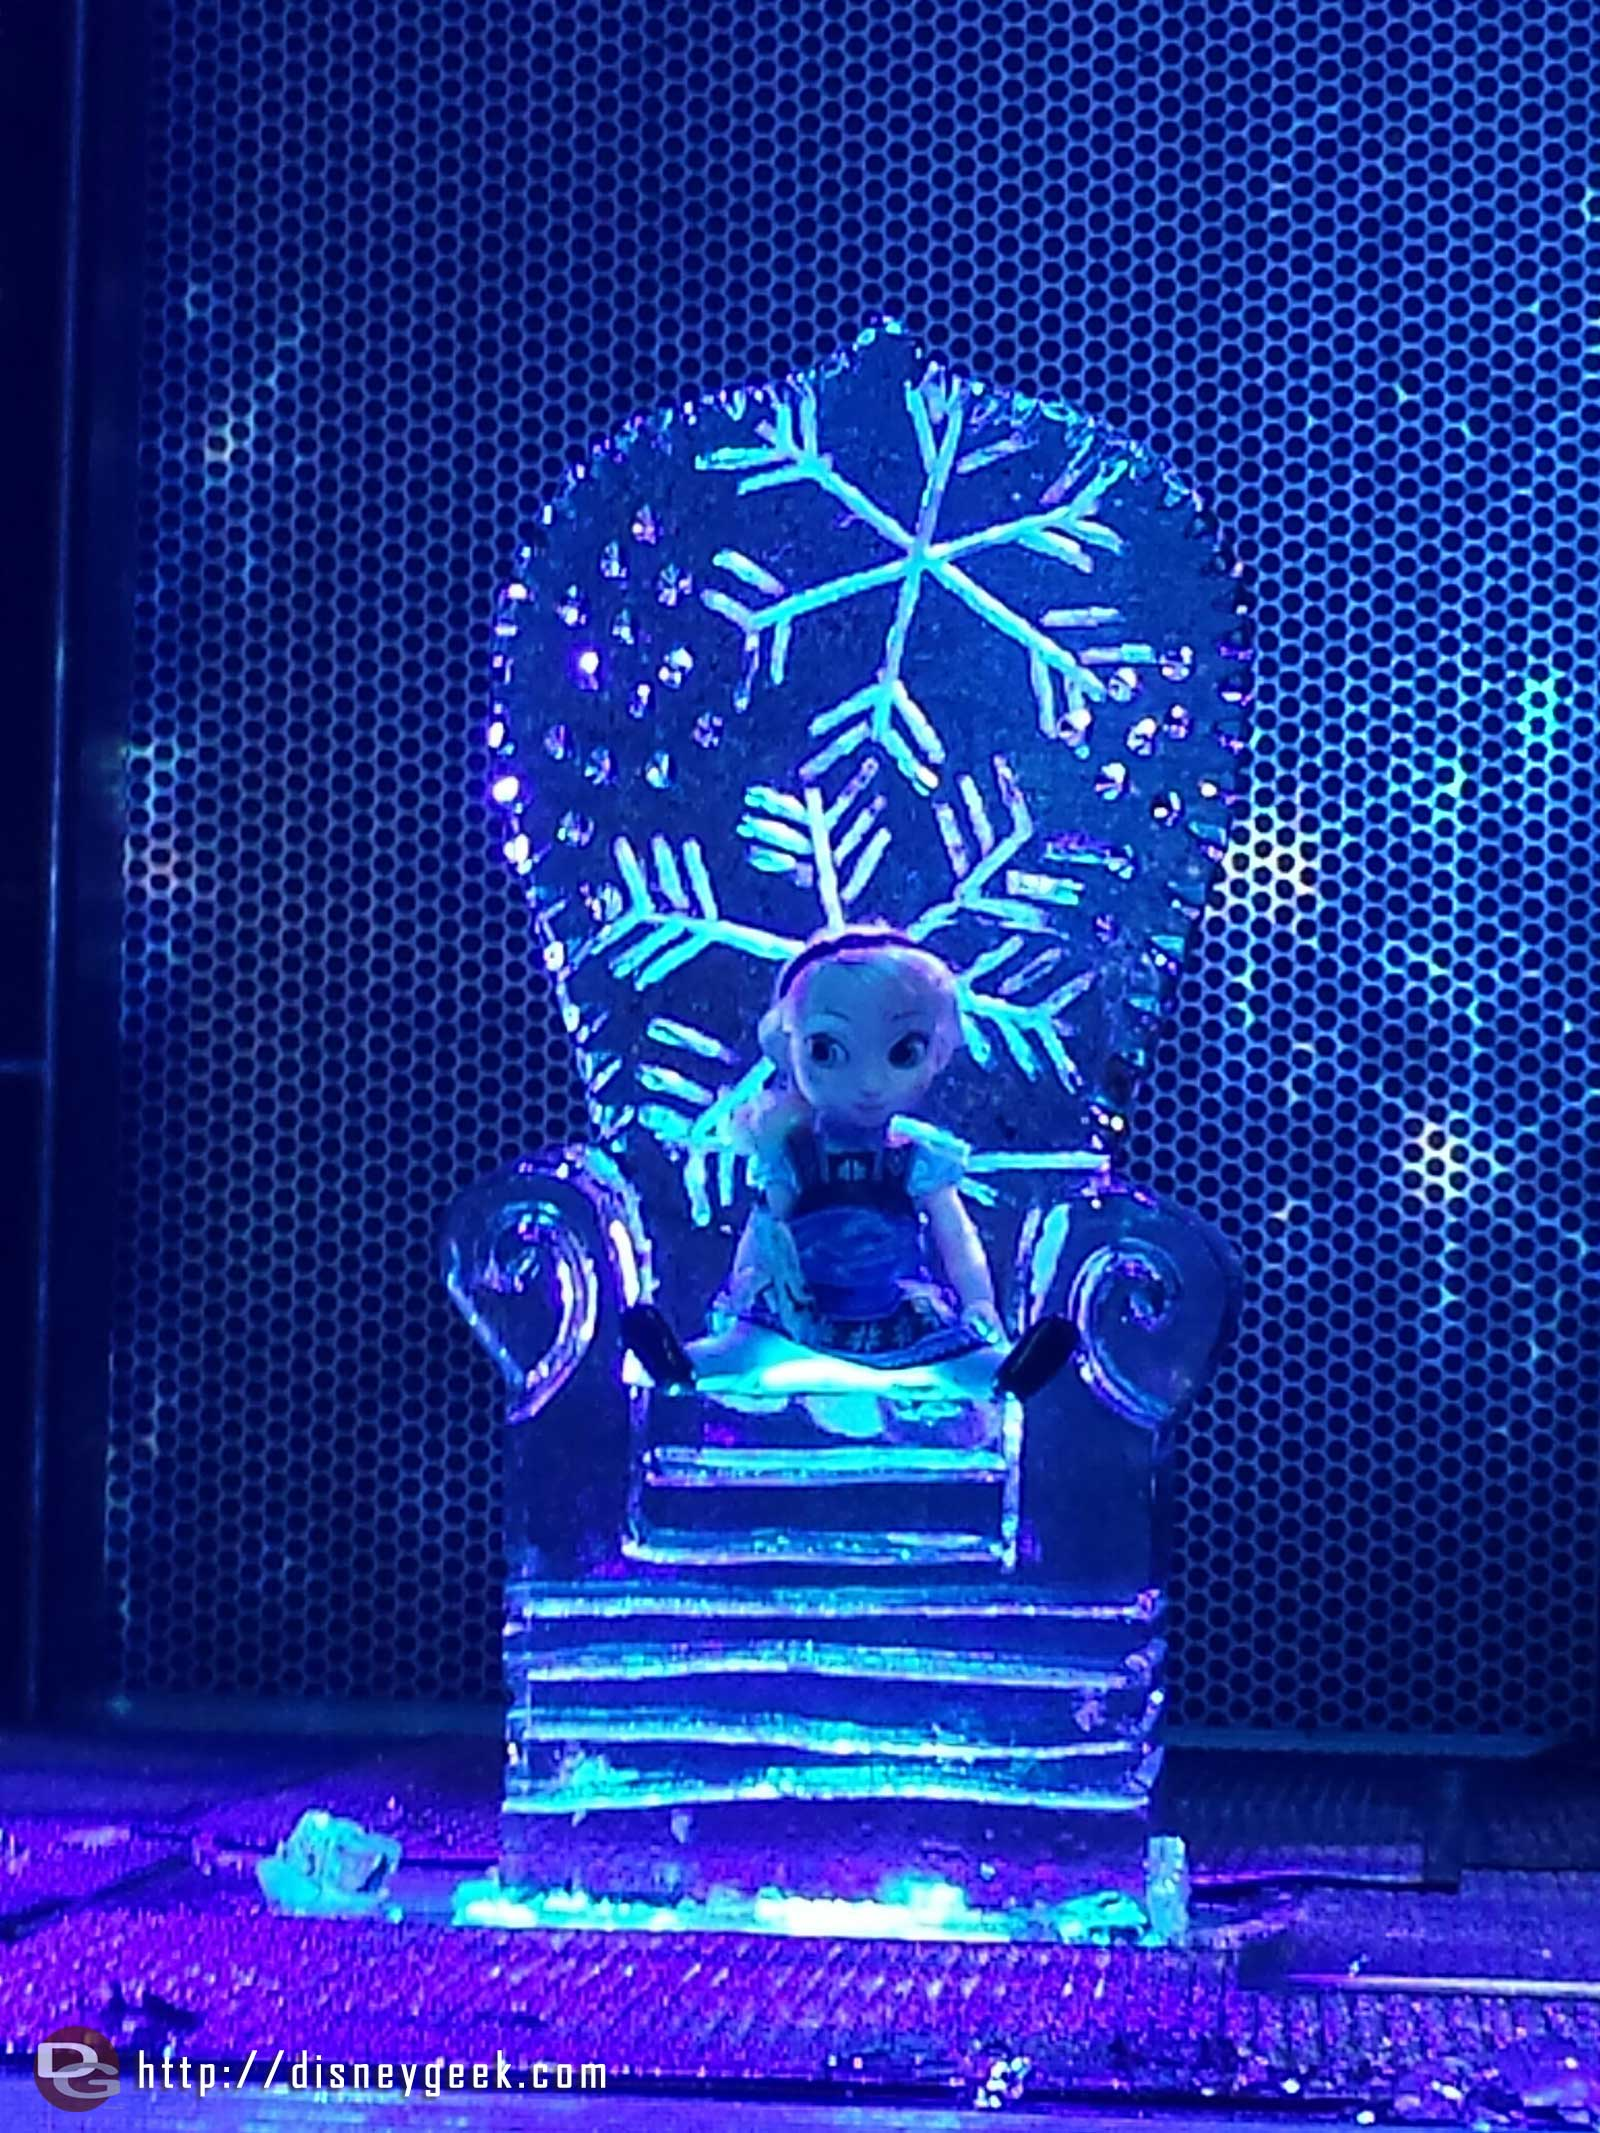 An ice chair carved this evening at #FreezetheNight #FrozenFun